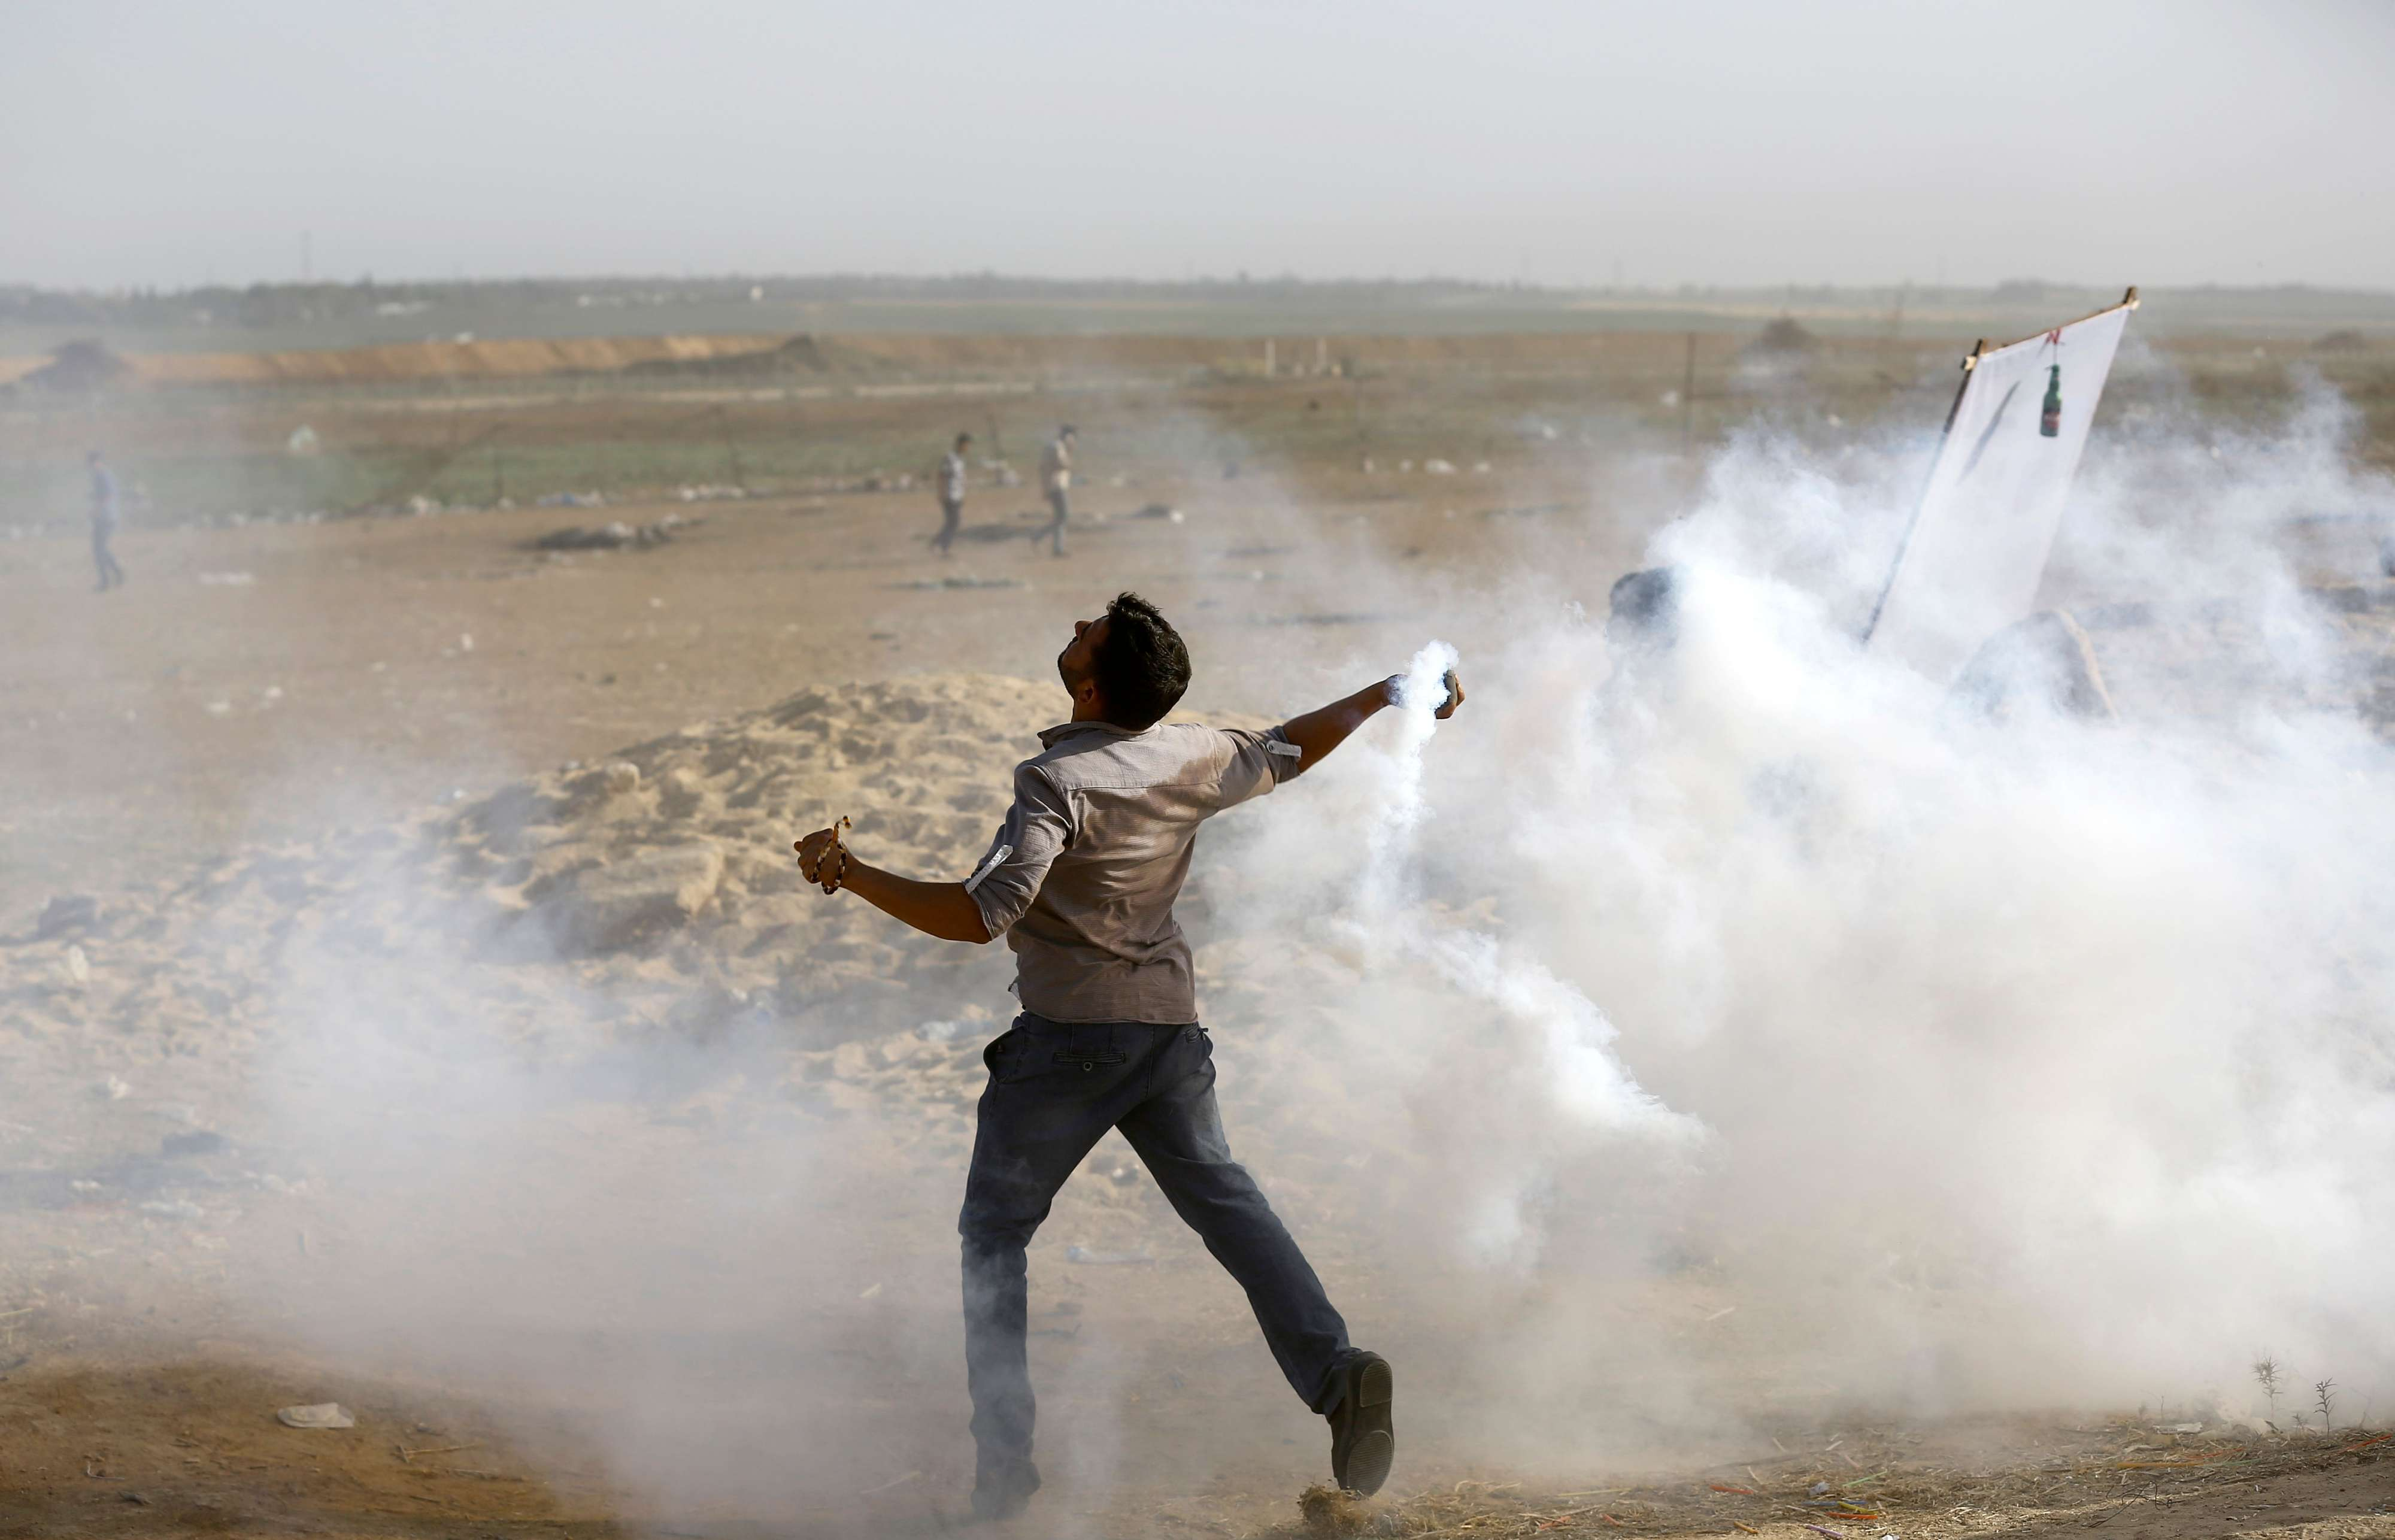 A Palestinian man throws back an Israeli tear gas canister during protests near the Gaza-Israel the border, on May 18. (AFP)